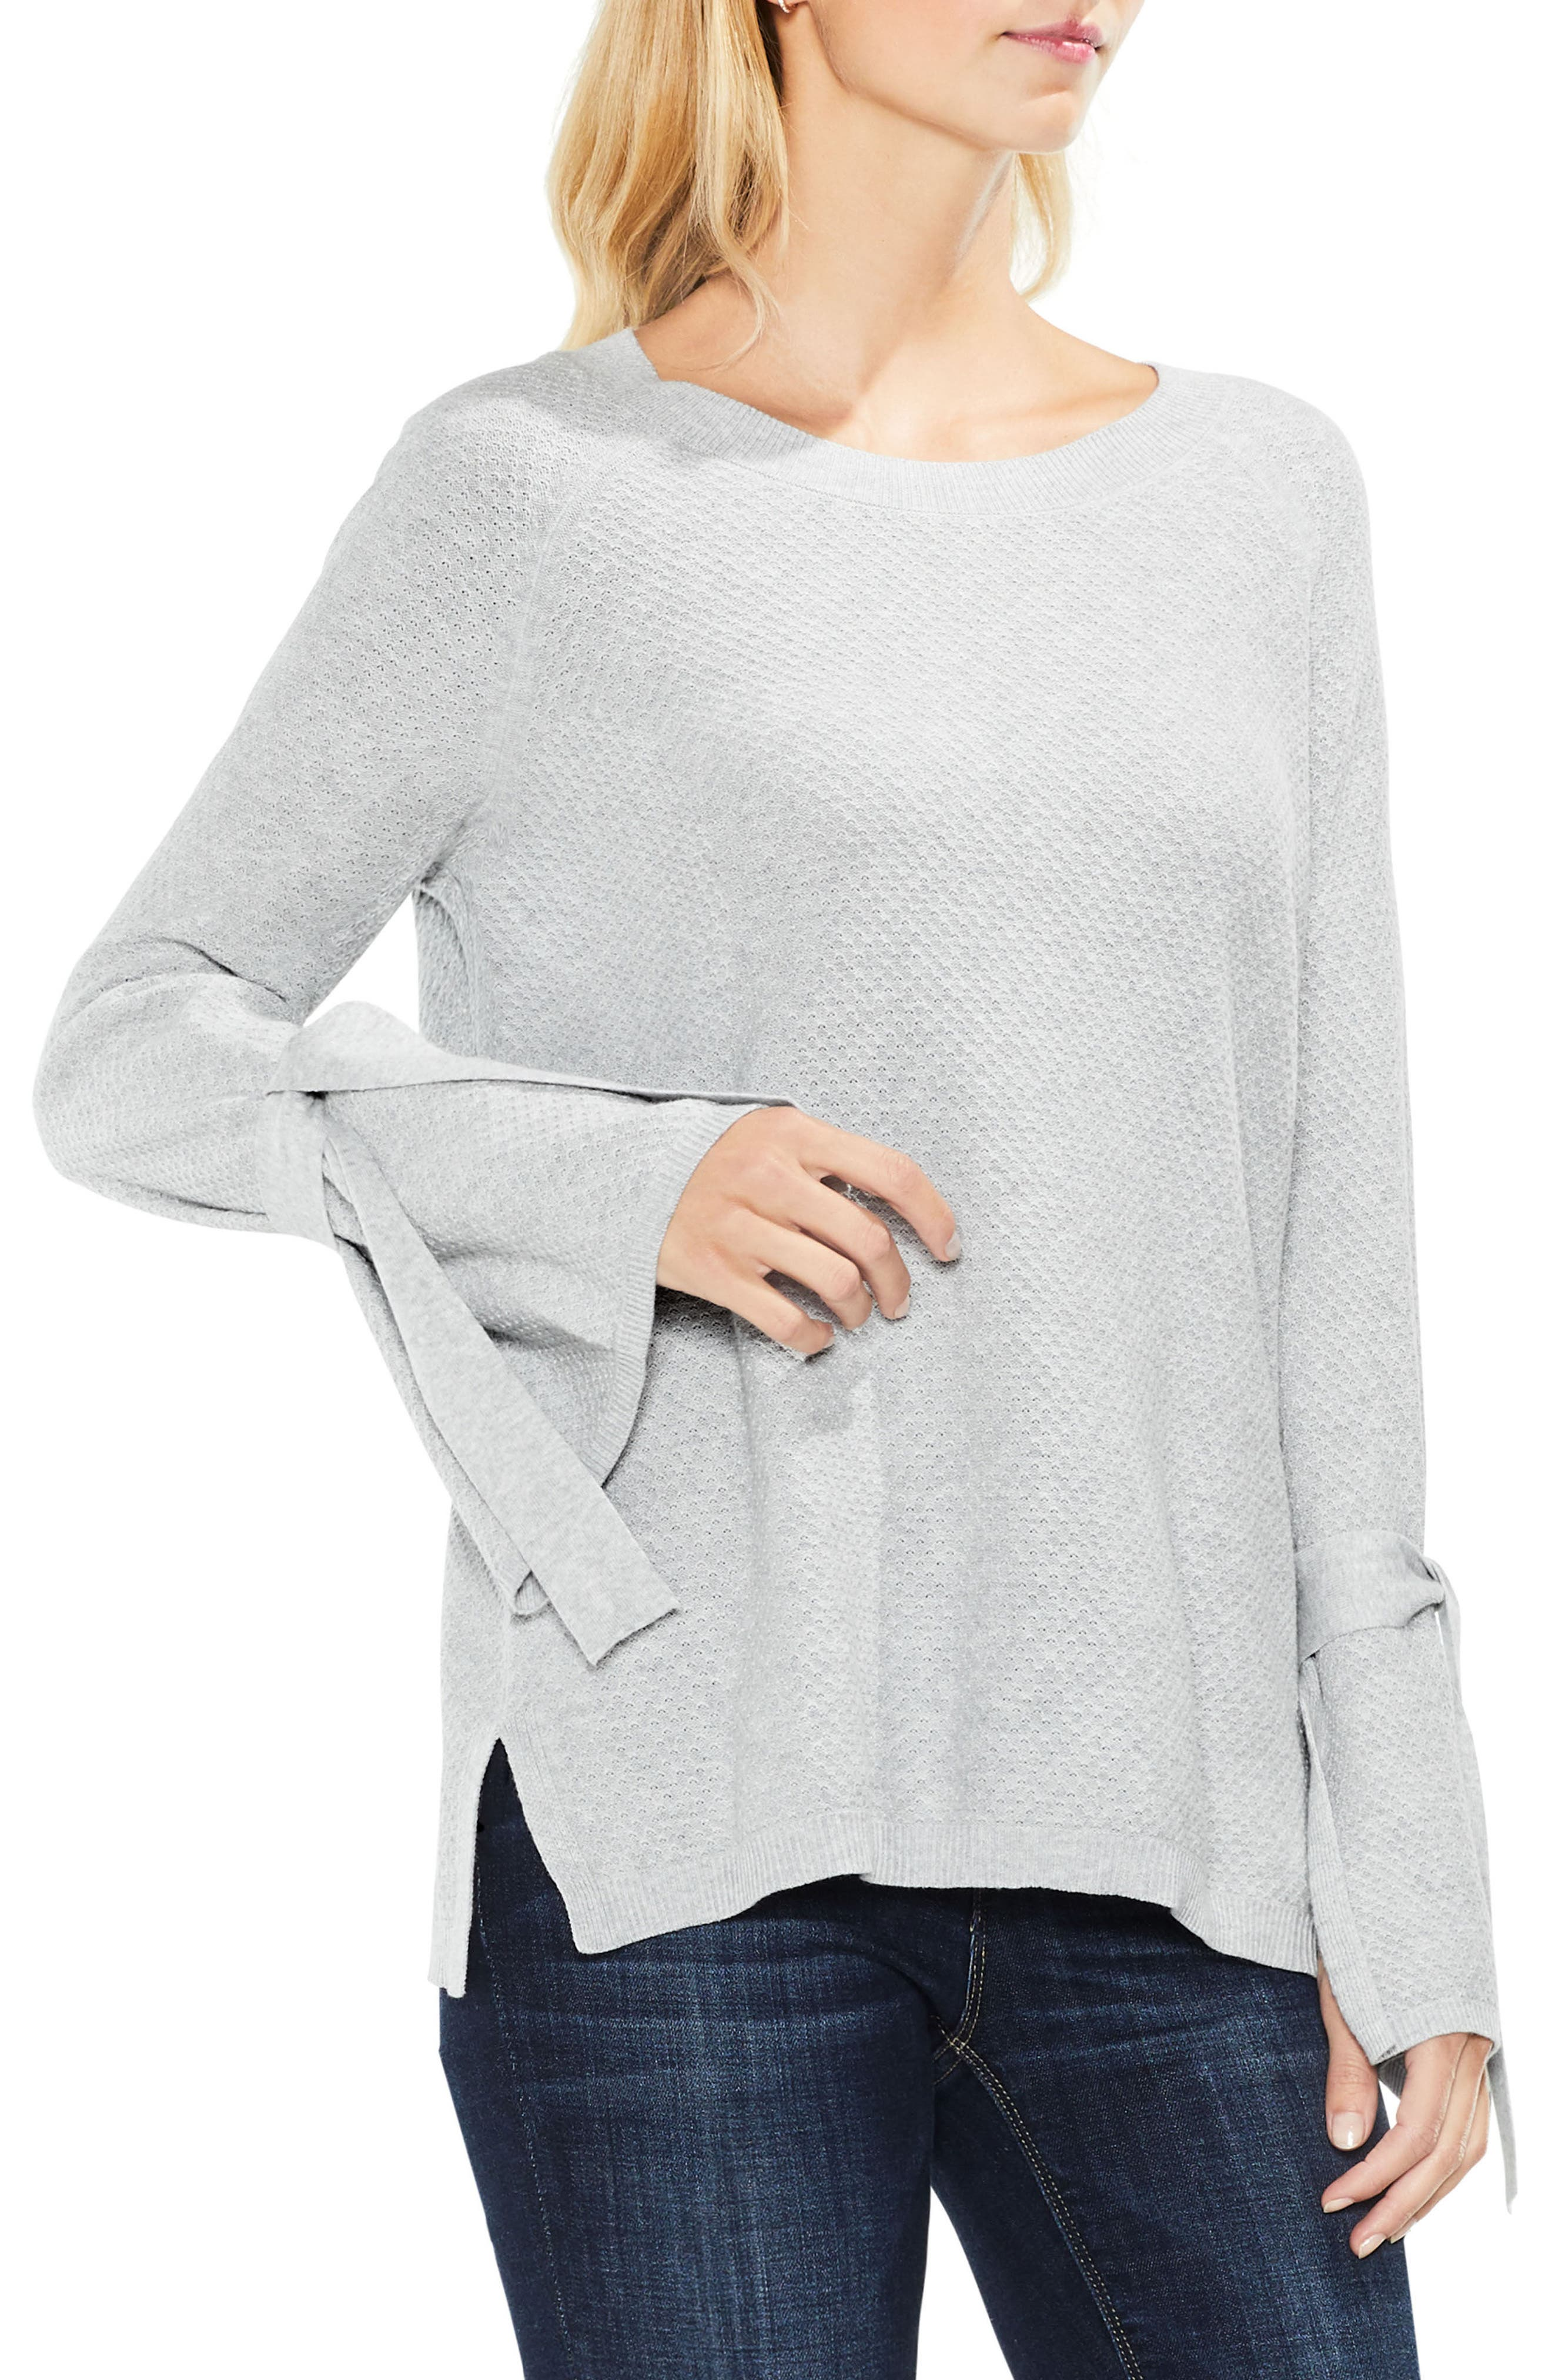 Texture Stitch Tie-Sleeve Top,                             Main thumbnail 1, color,                             050